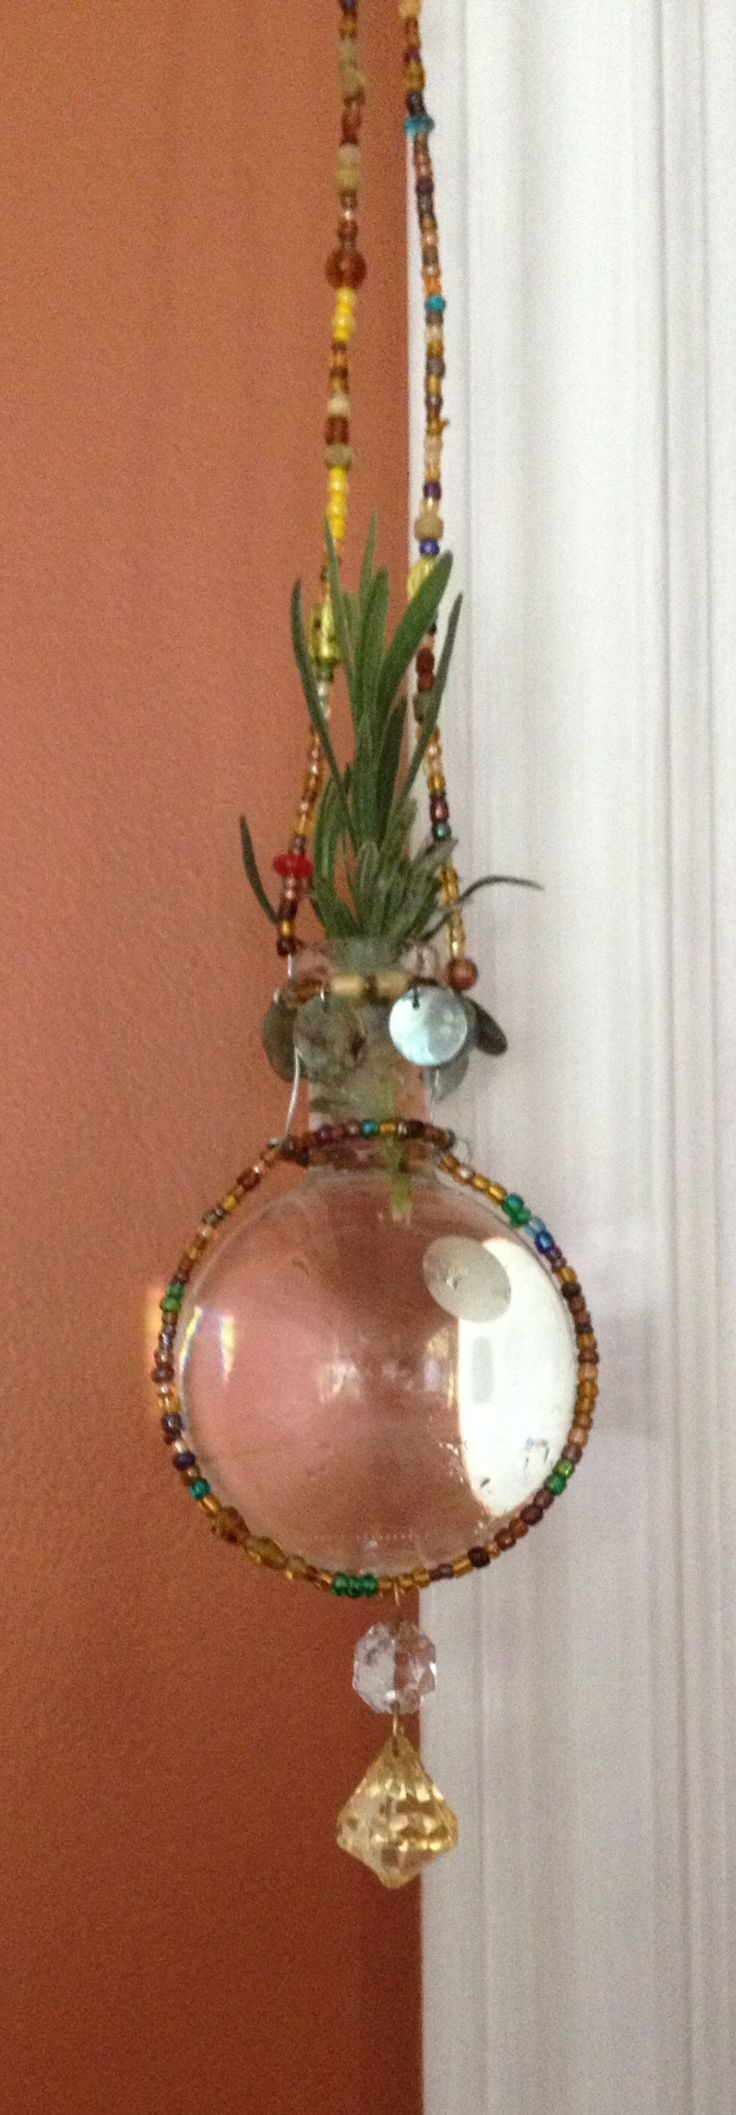 Little glass and bead hanging vase for cuttings from my garden